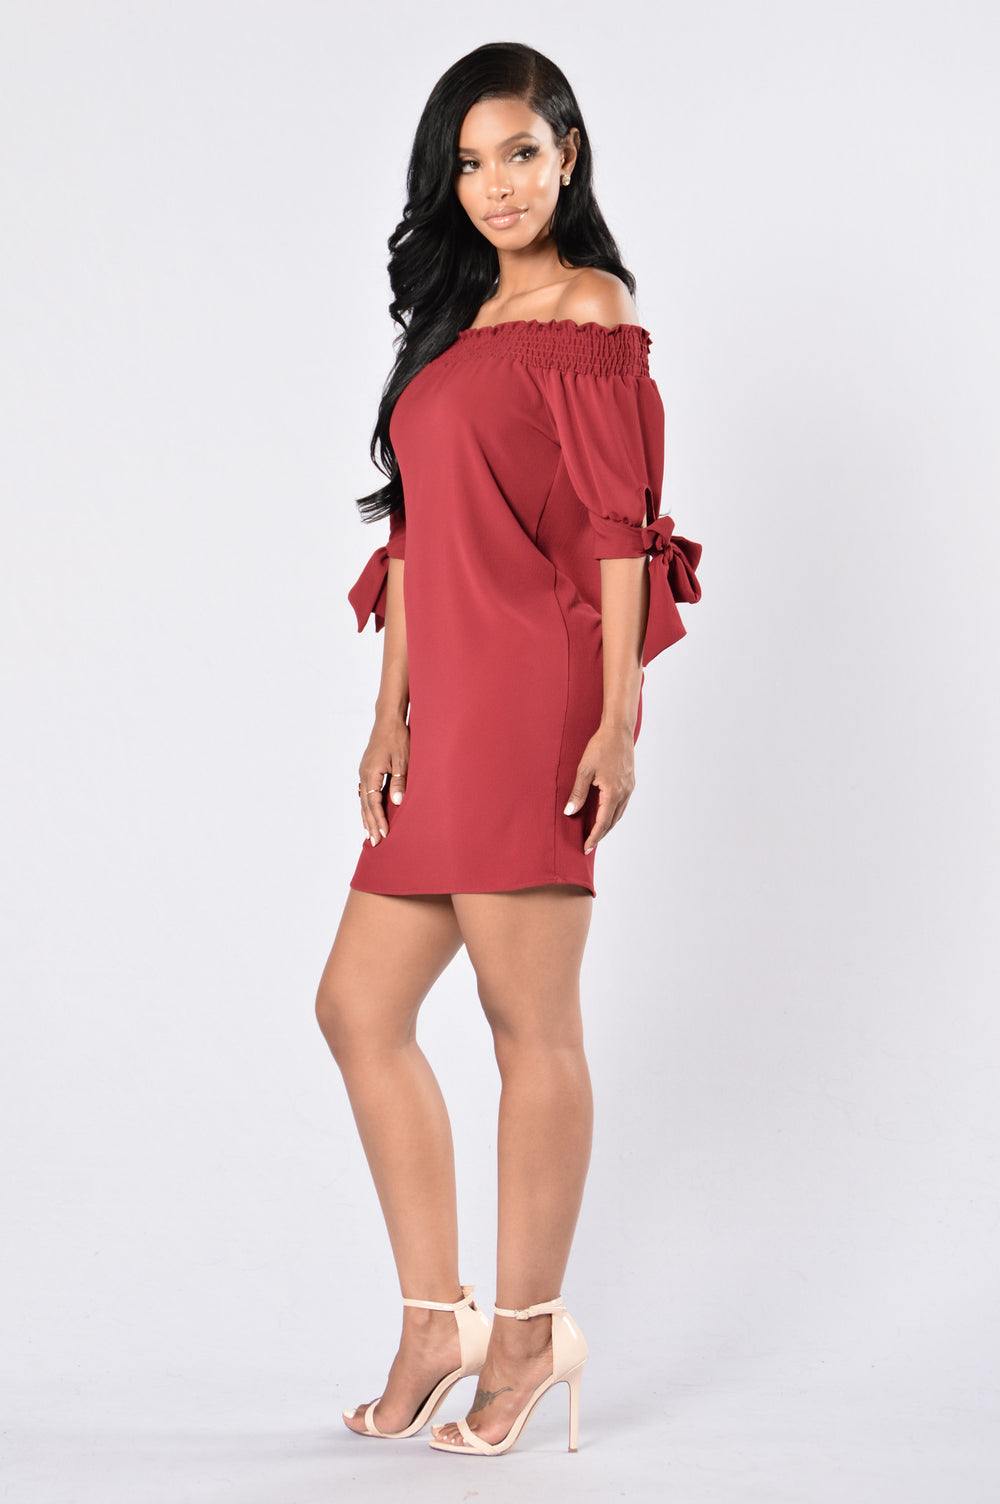 Room for Happiness Dress - Burgundy